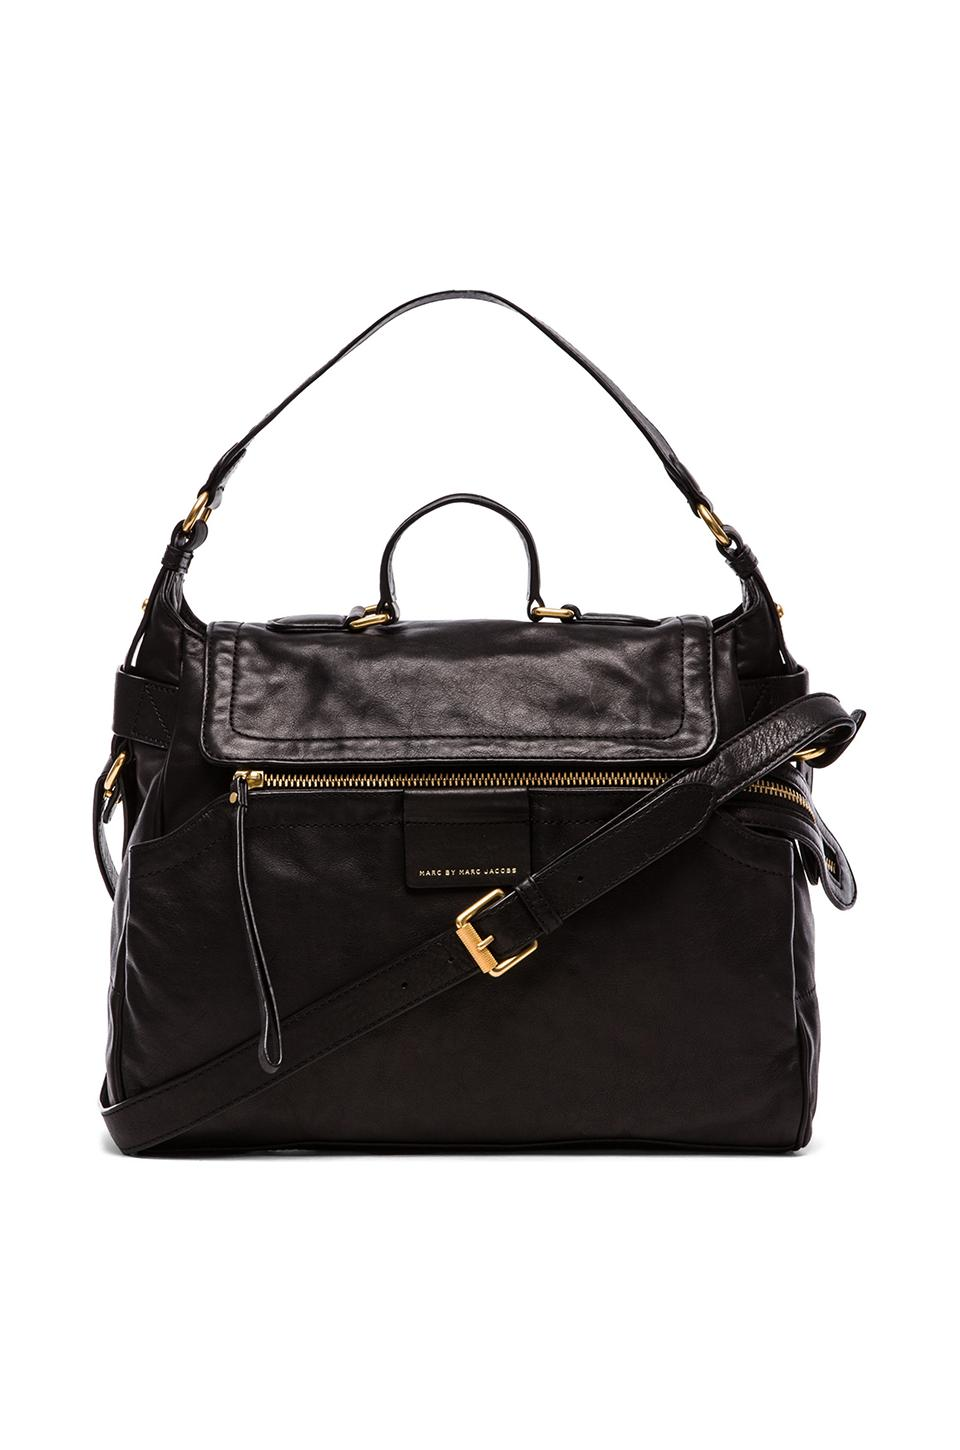 Marc by Marc Jacobs Moto Satchel in Black